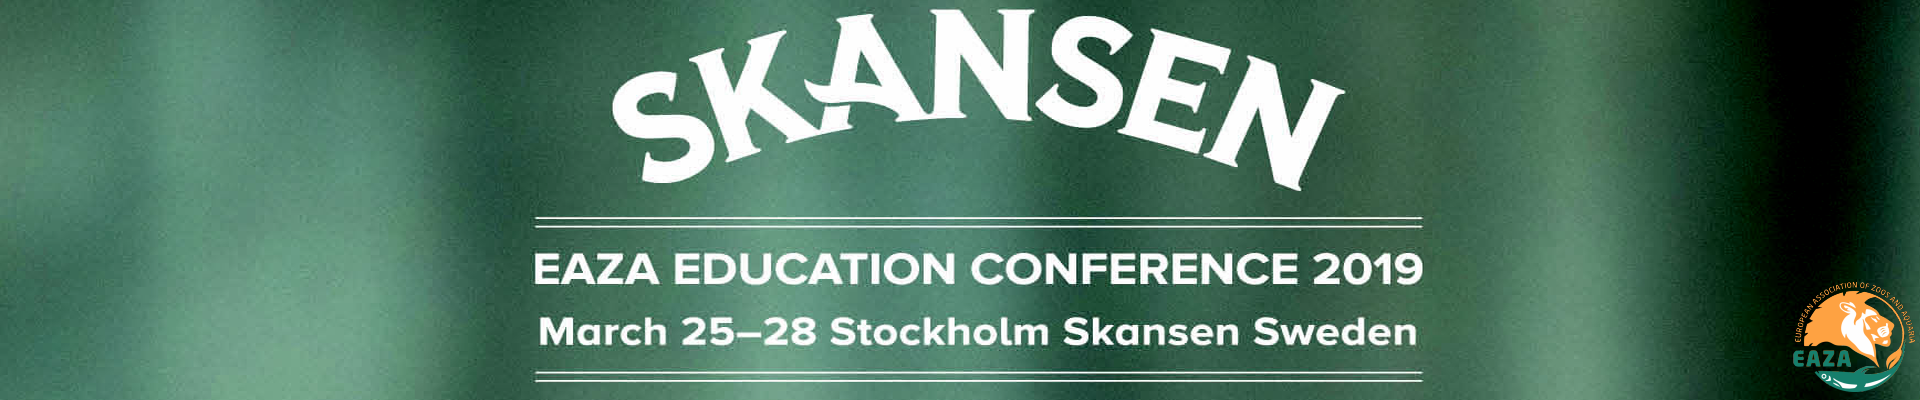 EAZA EDUCATION CONFERENCE 2019